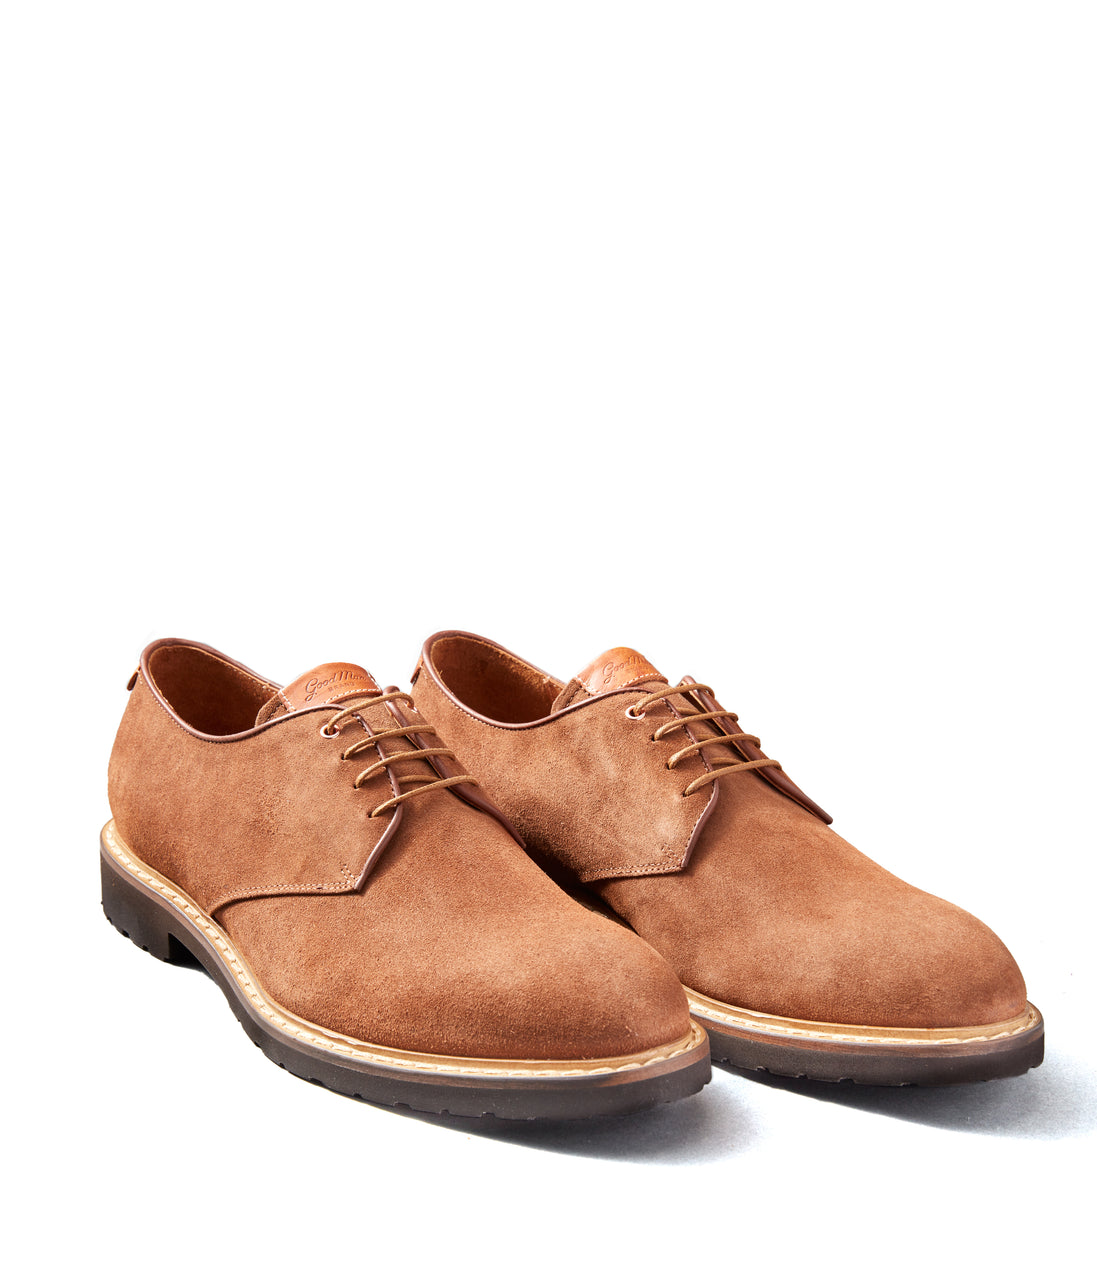 Derby Shoe - Snuff - Good Man Brand - Derby Shoe - Snuff